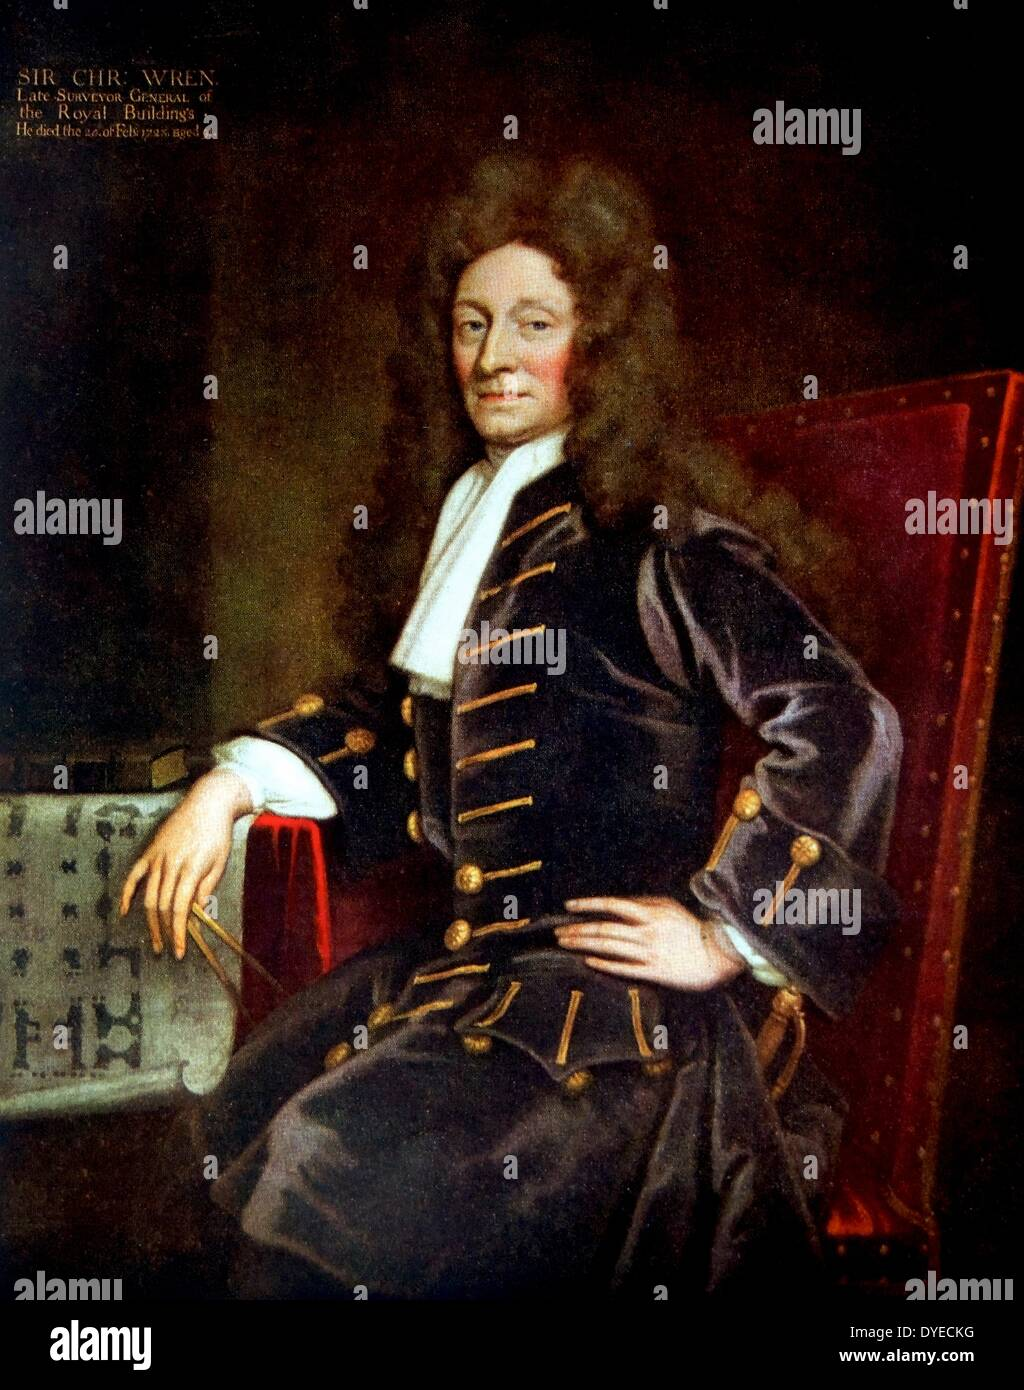 Sir Christopher Wren - Stock Image